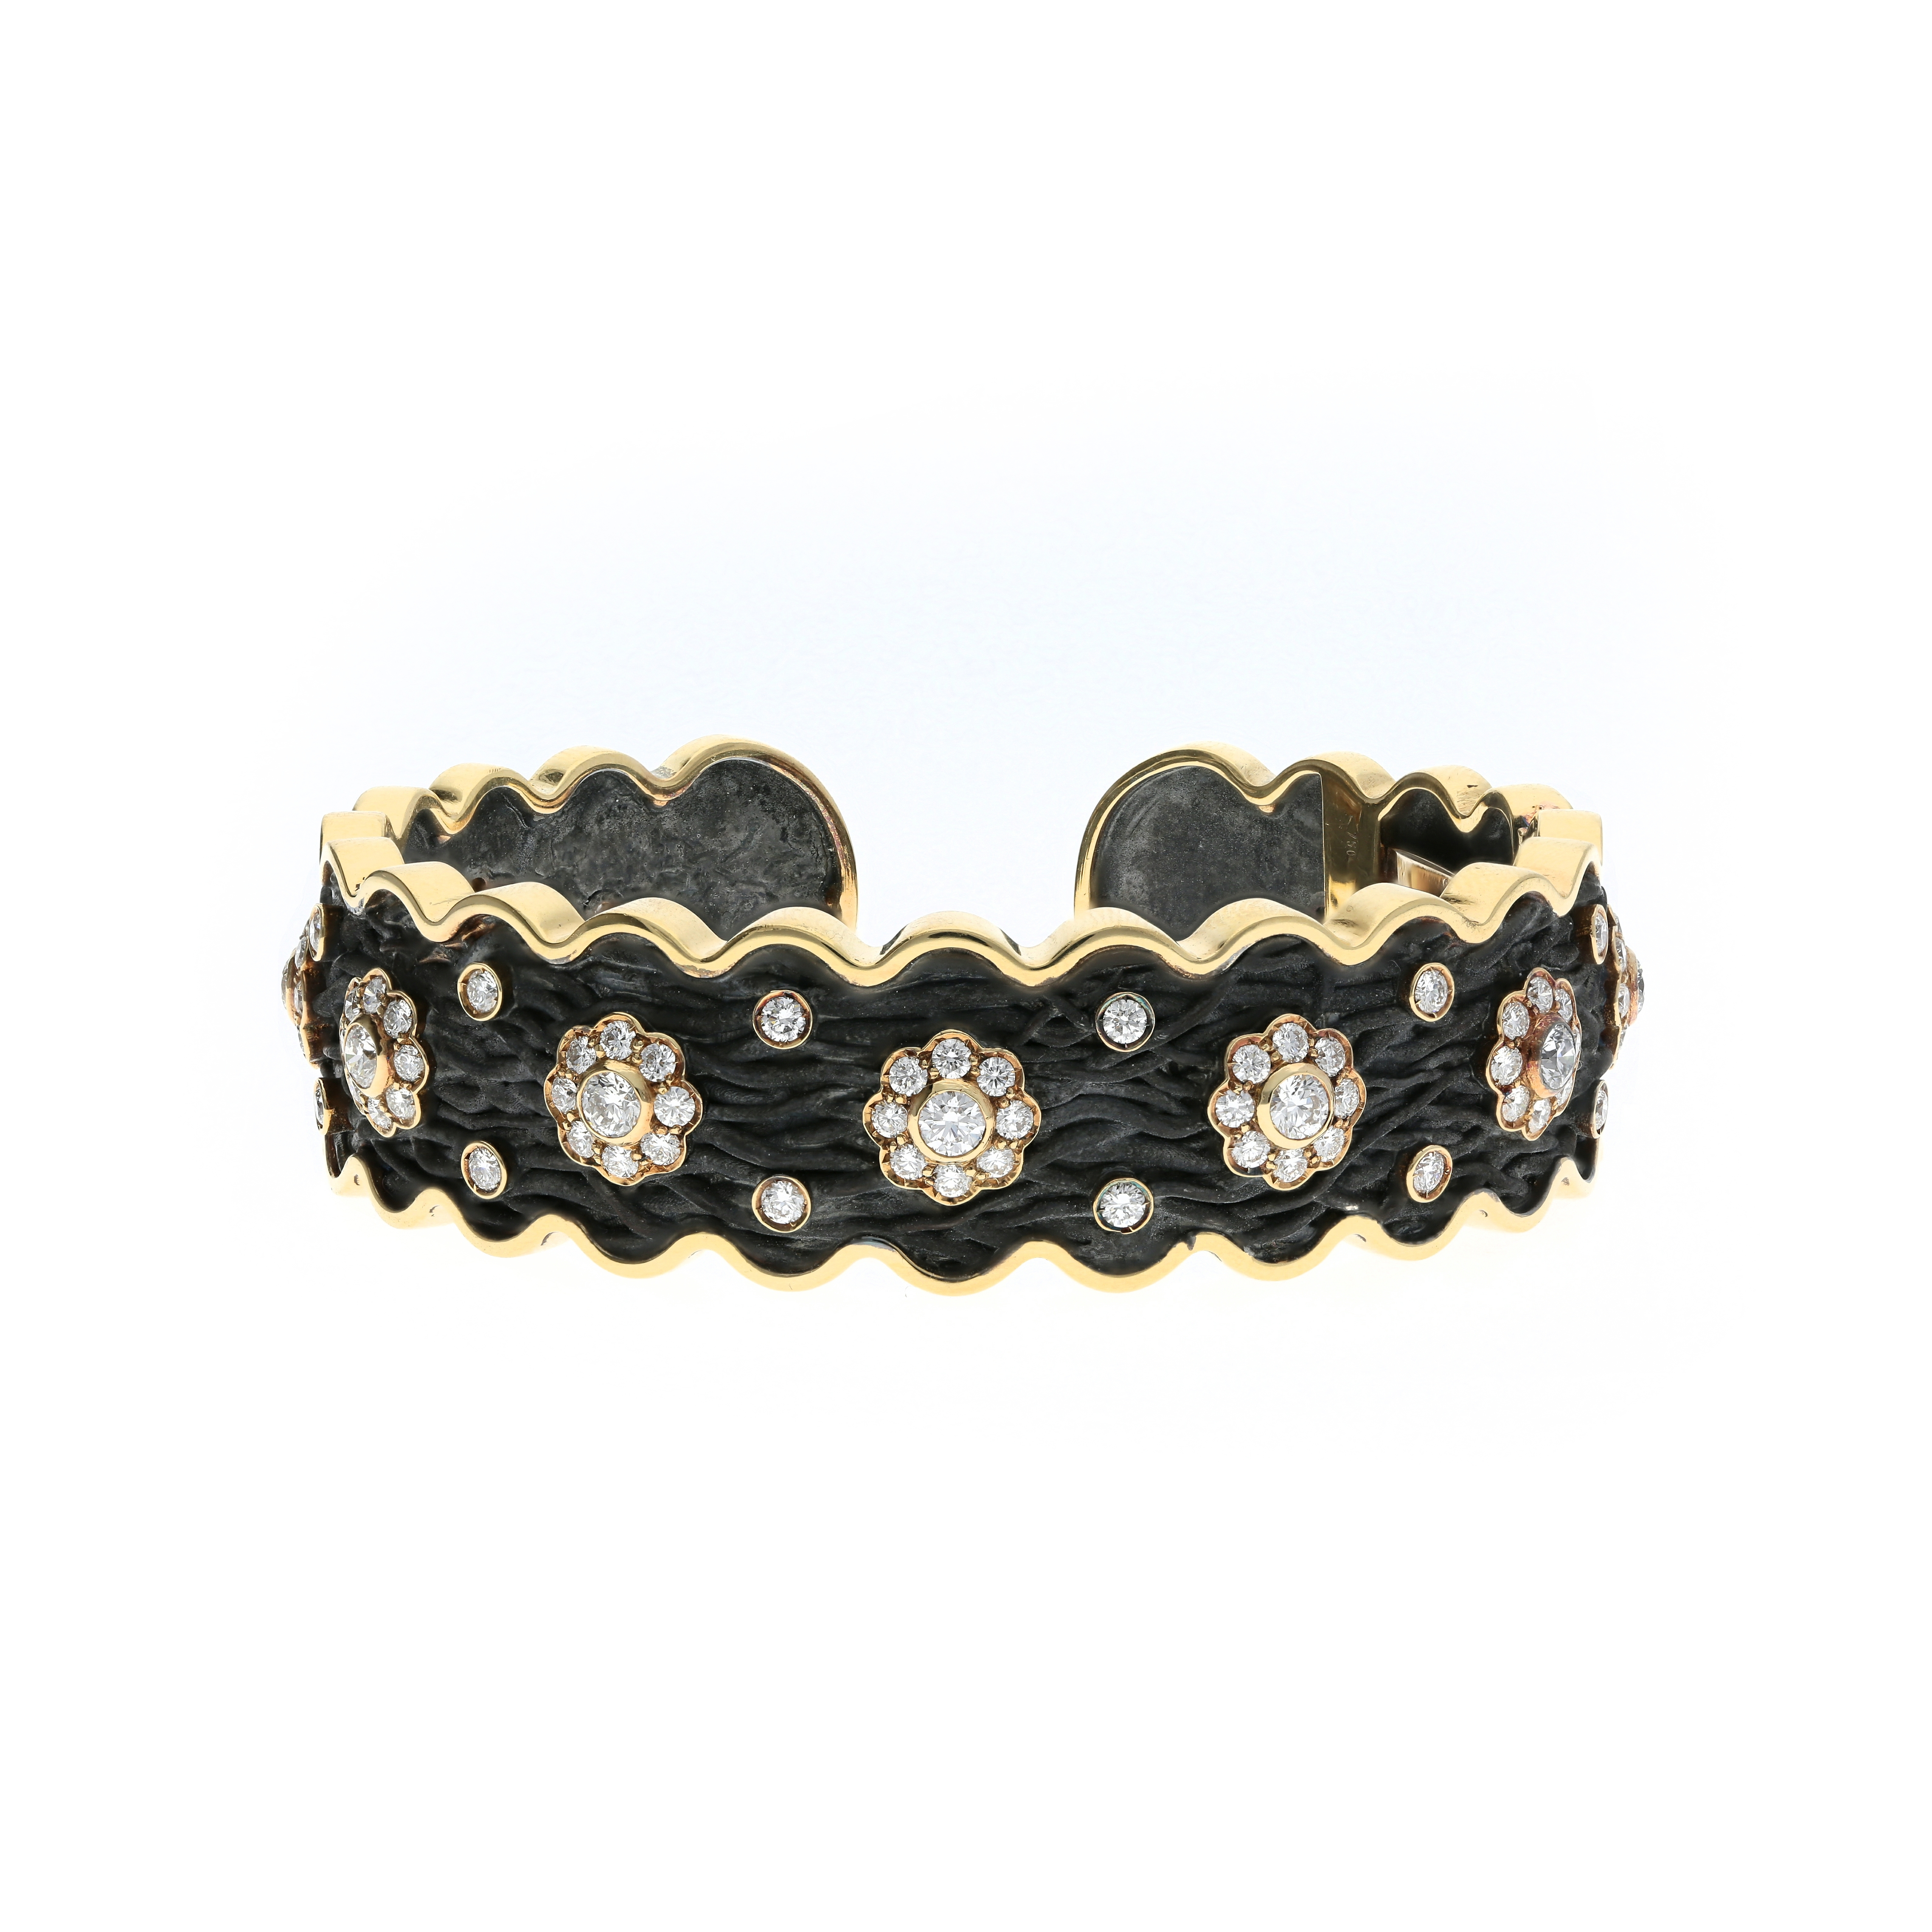 Roots Collection Cuff bracelet oxidized silver and 18kt yellow gold with diamonds